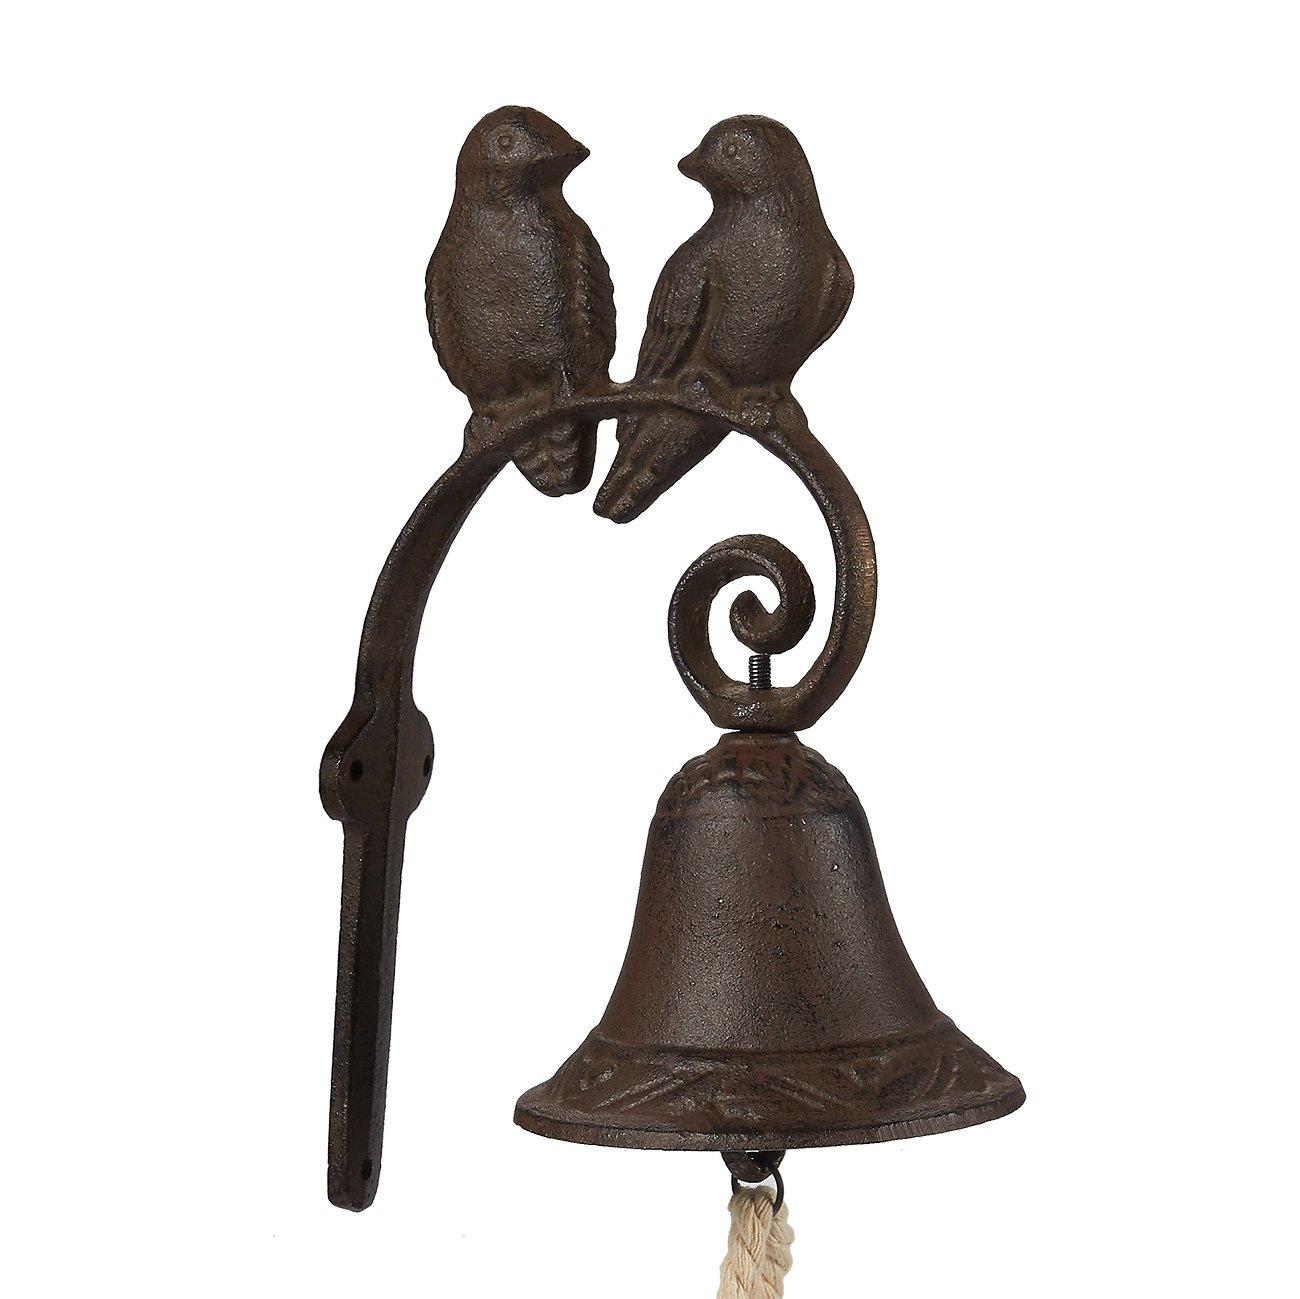 Iron Cast Door Bell - Rustic Birds Couple Door Chime - Wall Mounted Front Door Bell for Farmhouse, Garden, and Front Yard - Brown, 4.5 x 8.5 x 1.5 Inches